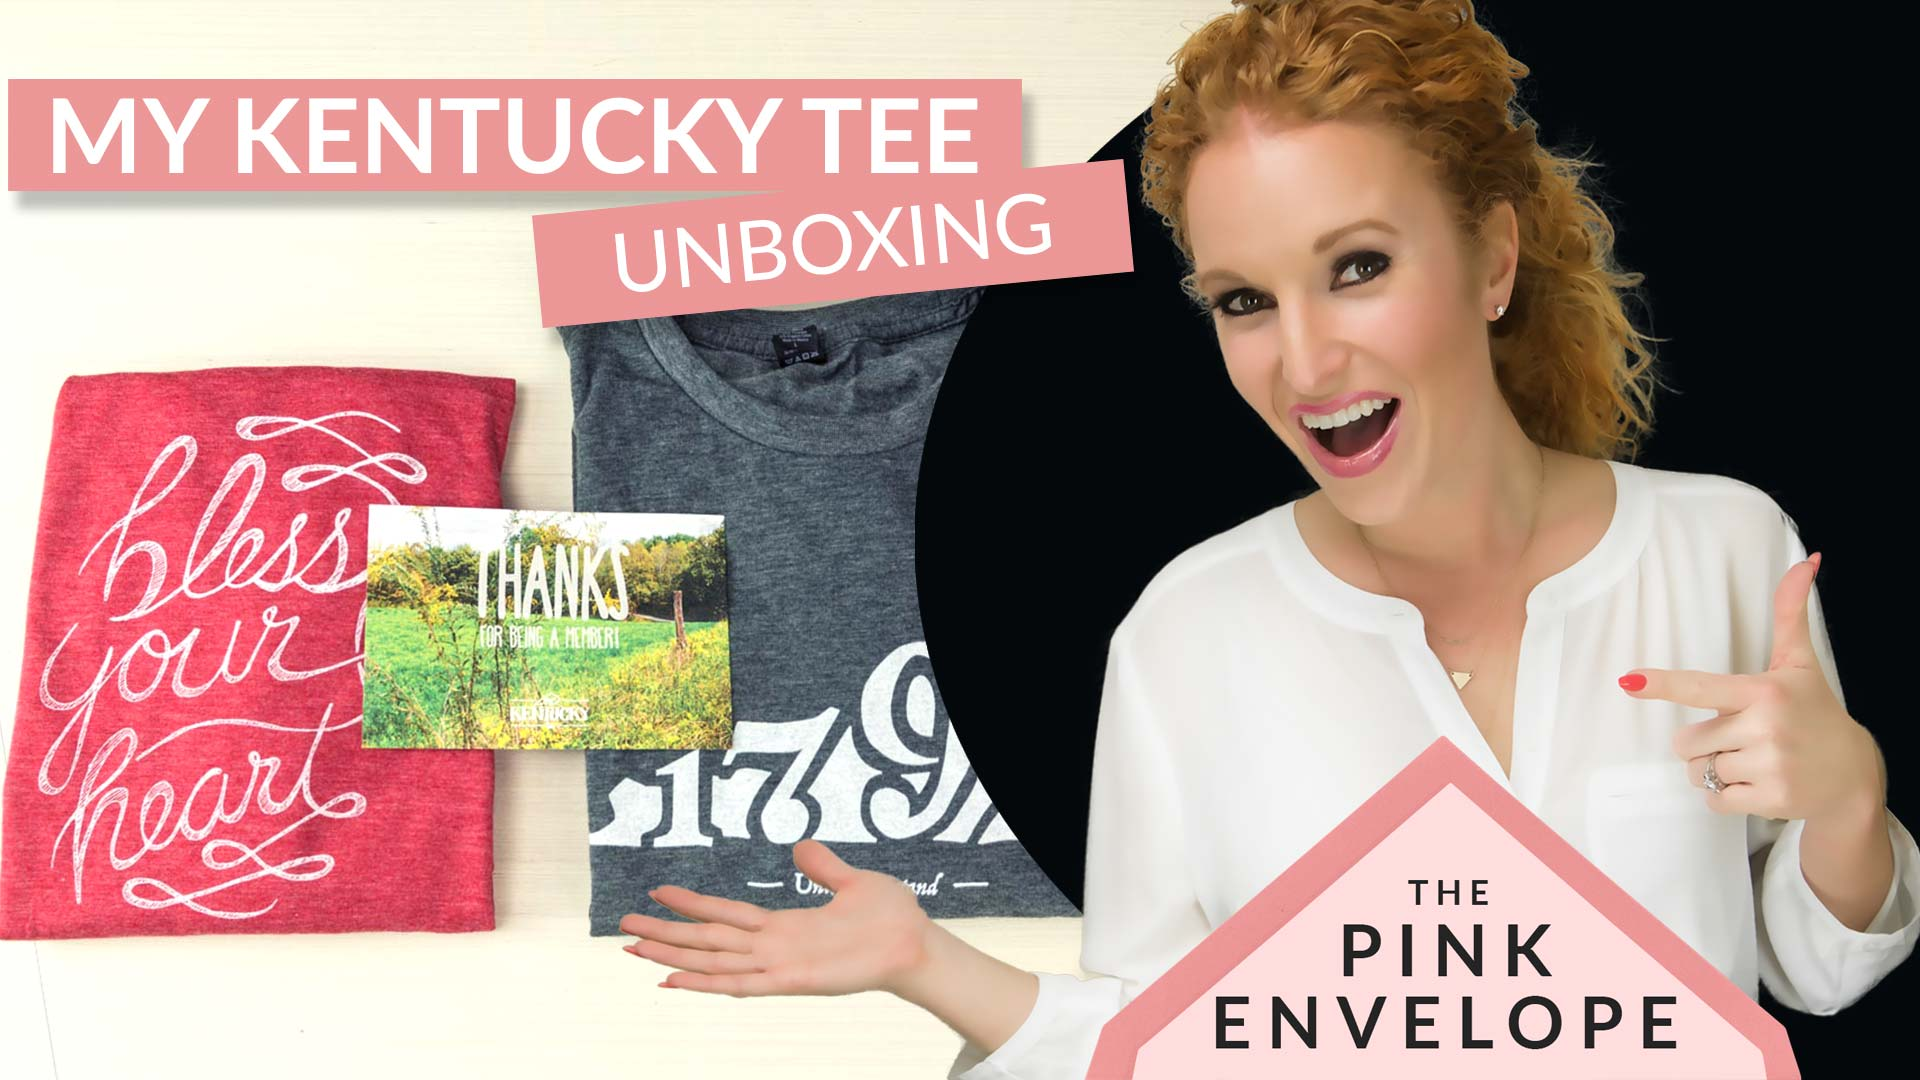 Kentucky T-shirt Subscription Box – My Kentucky Tee Review